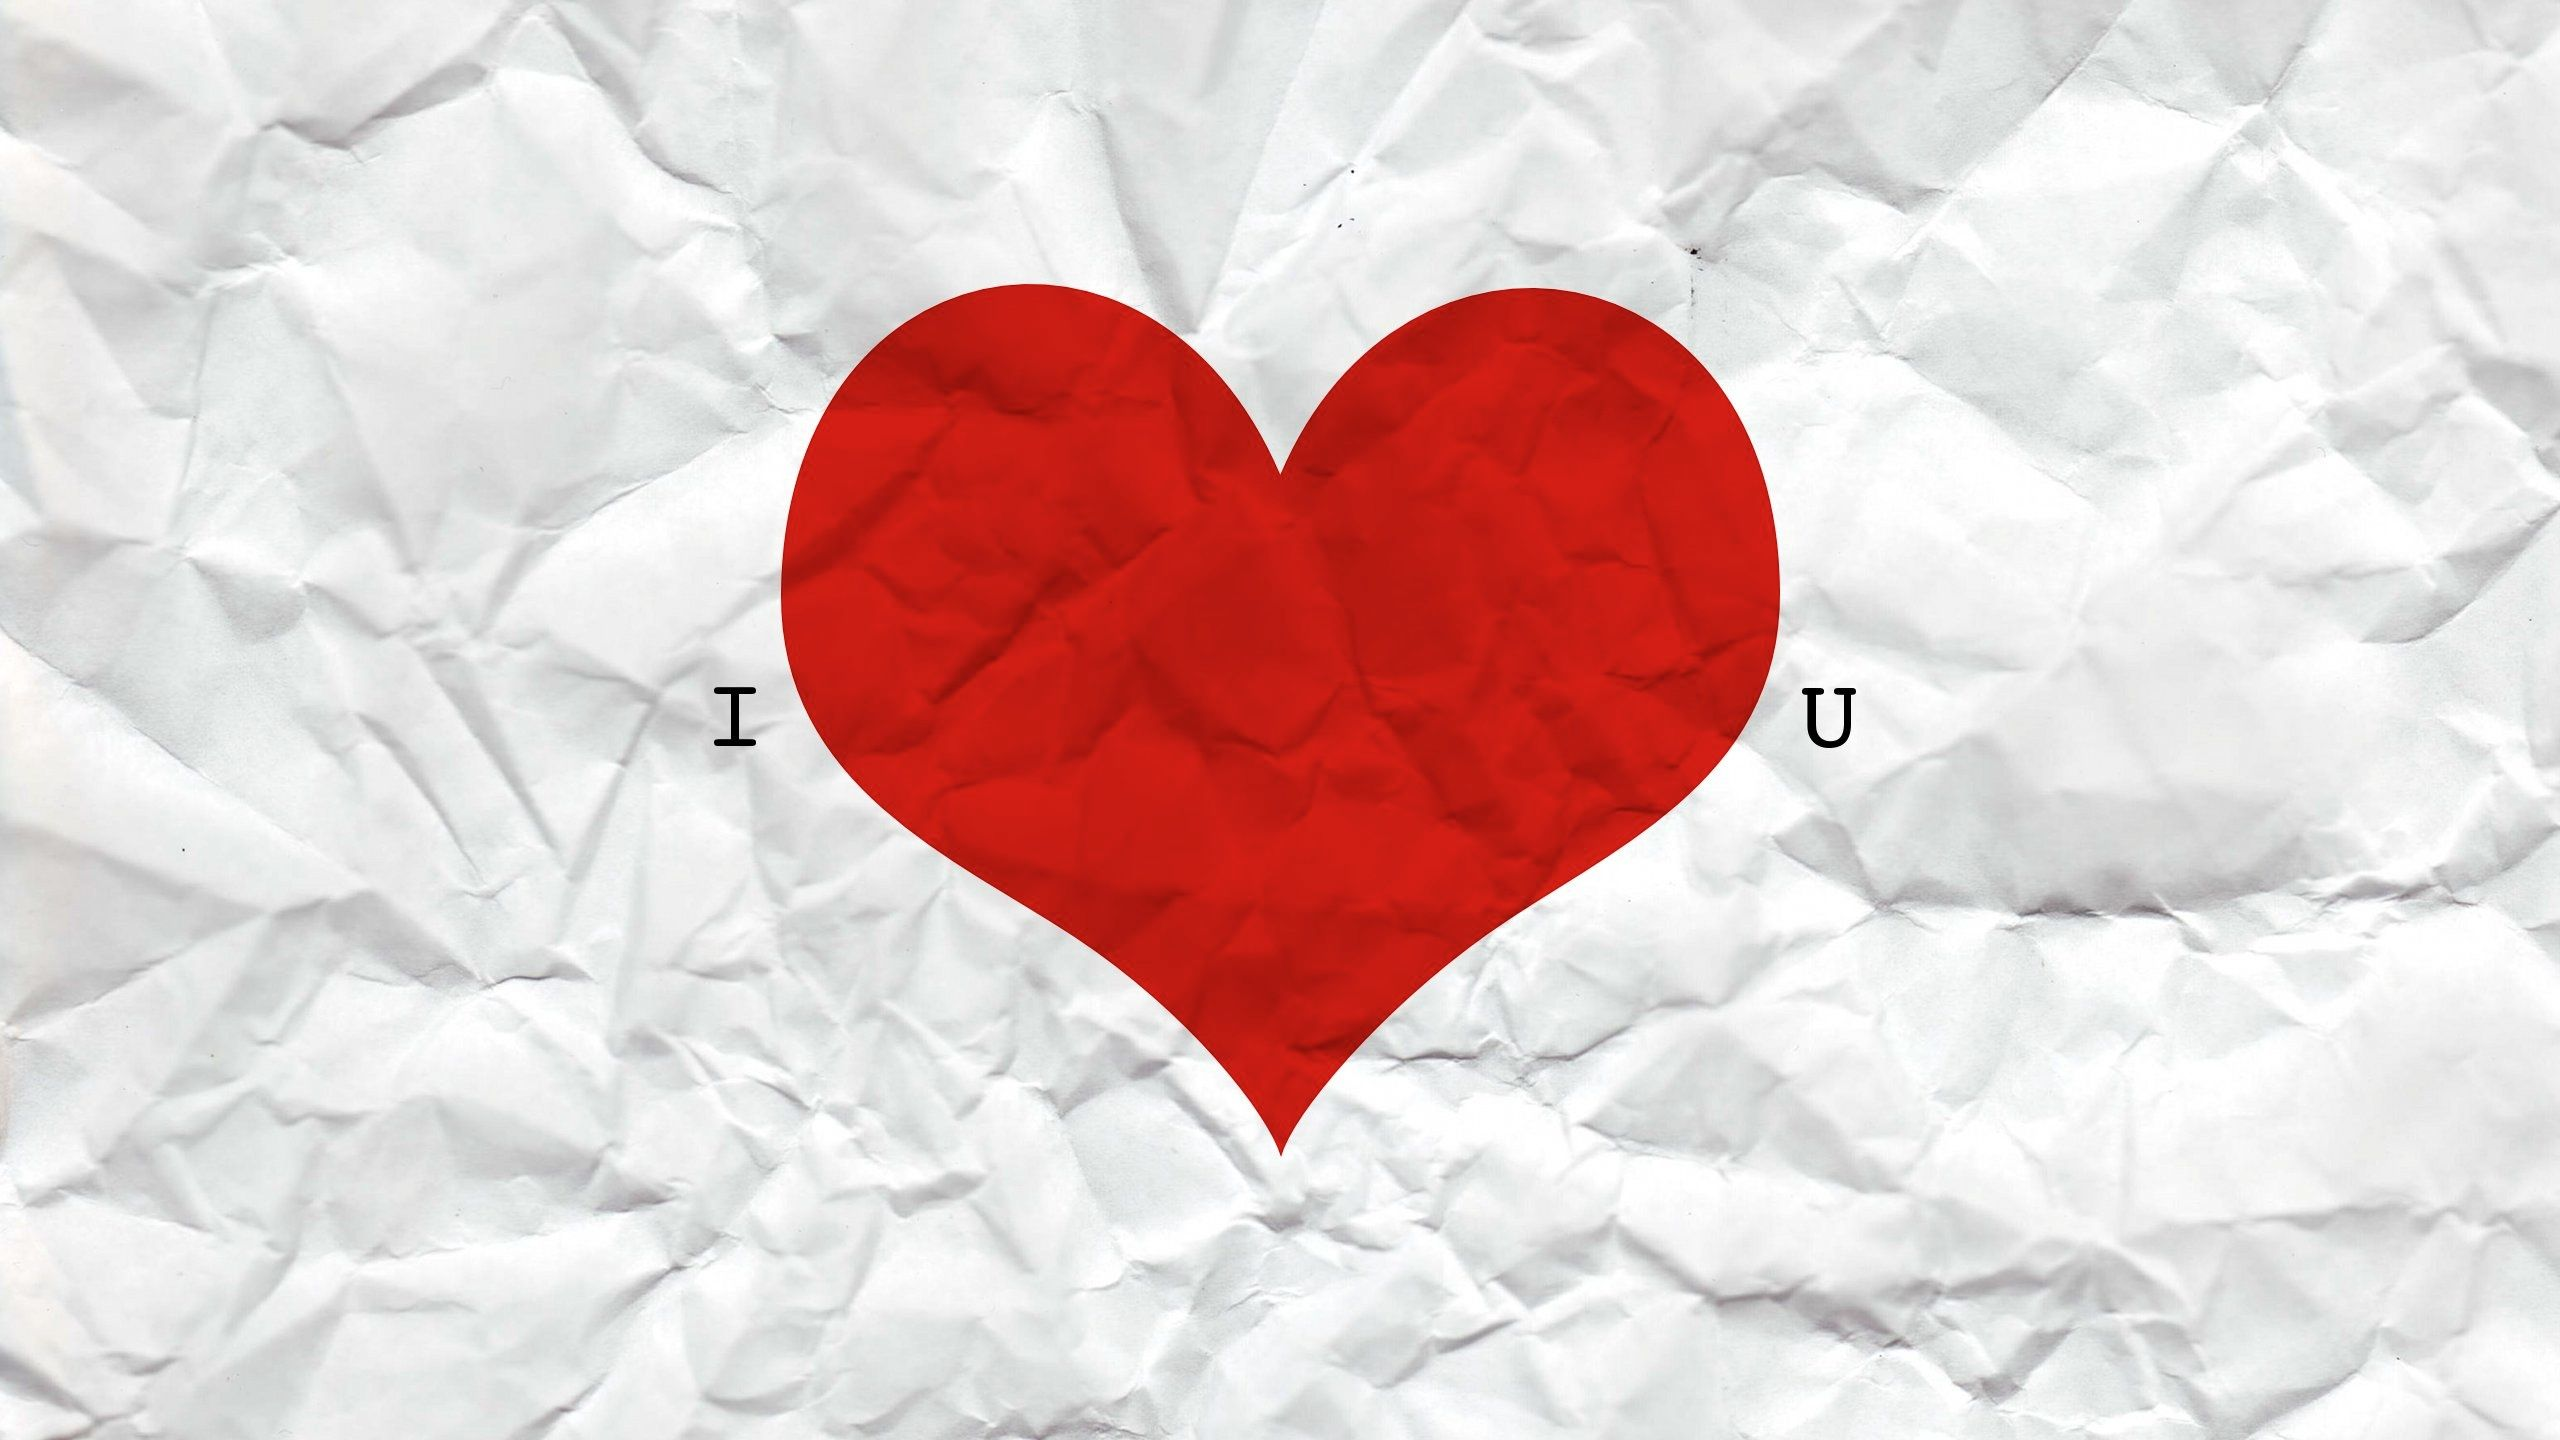 2560x1440 I Heart U Desktop Pc And Mac Wallpaper Valentines Greetings Valentines Greetings For Friends Valentines Wallpaper